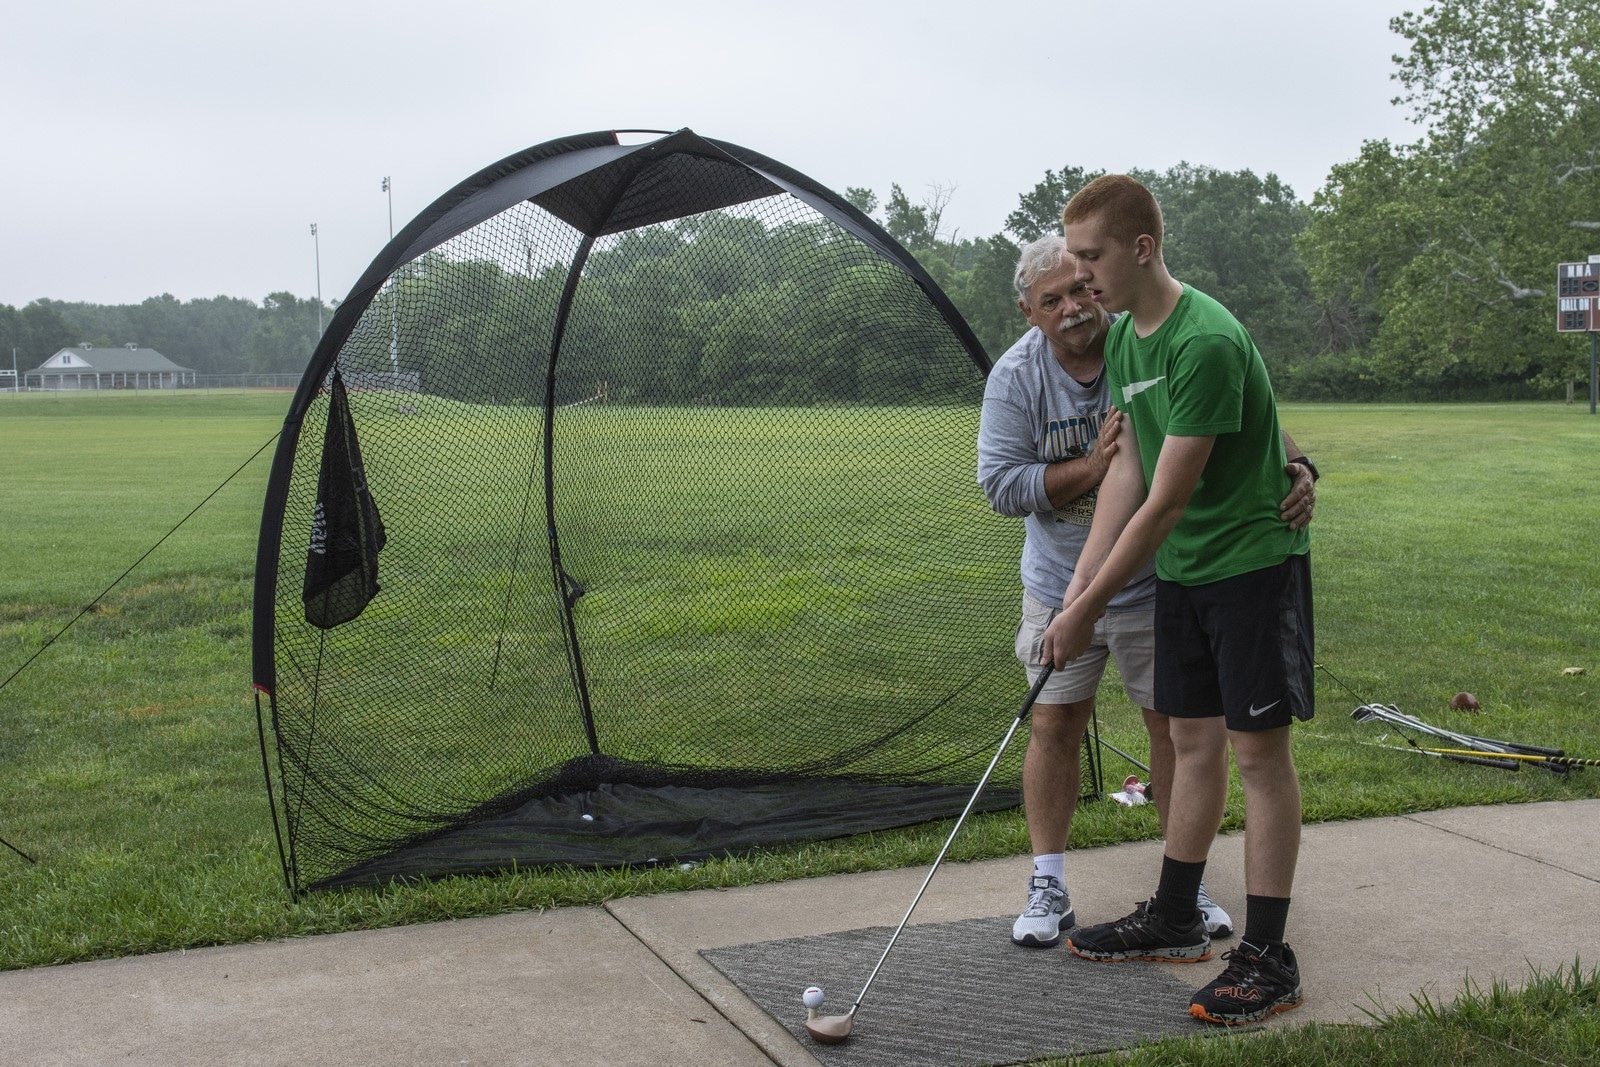 A coach shows an athlete how to stand and swing a golf club